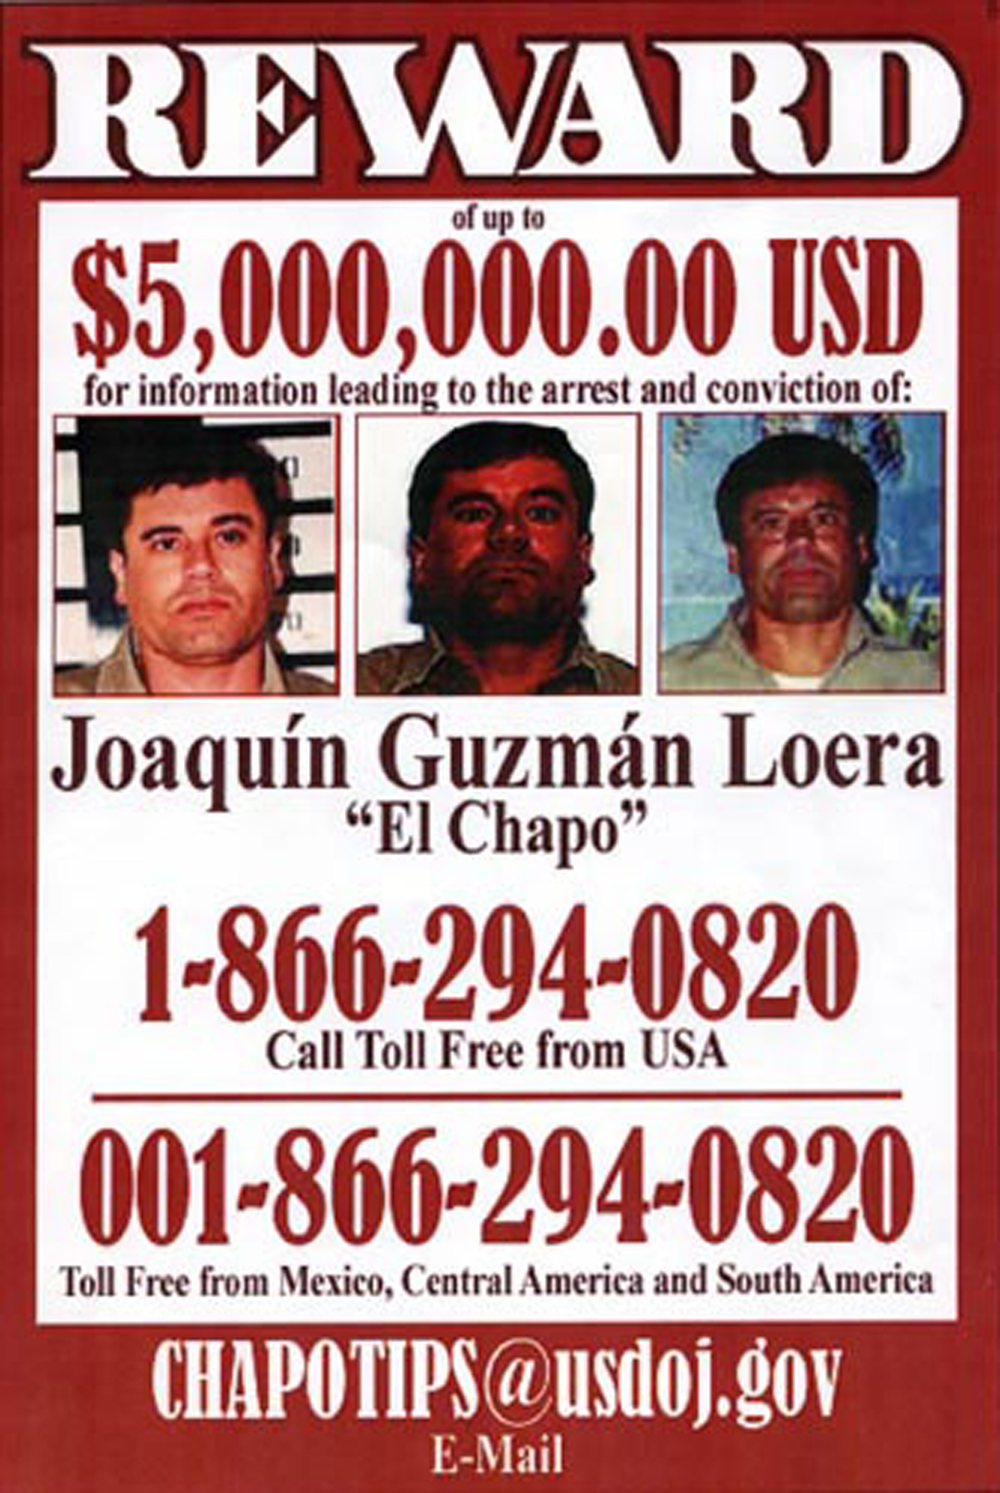 http://www.tucsonsentinel.com/files/entryimages/0112_chapo-guzman-wanted-poster_1_1.jpg